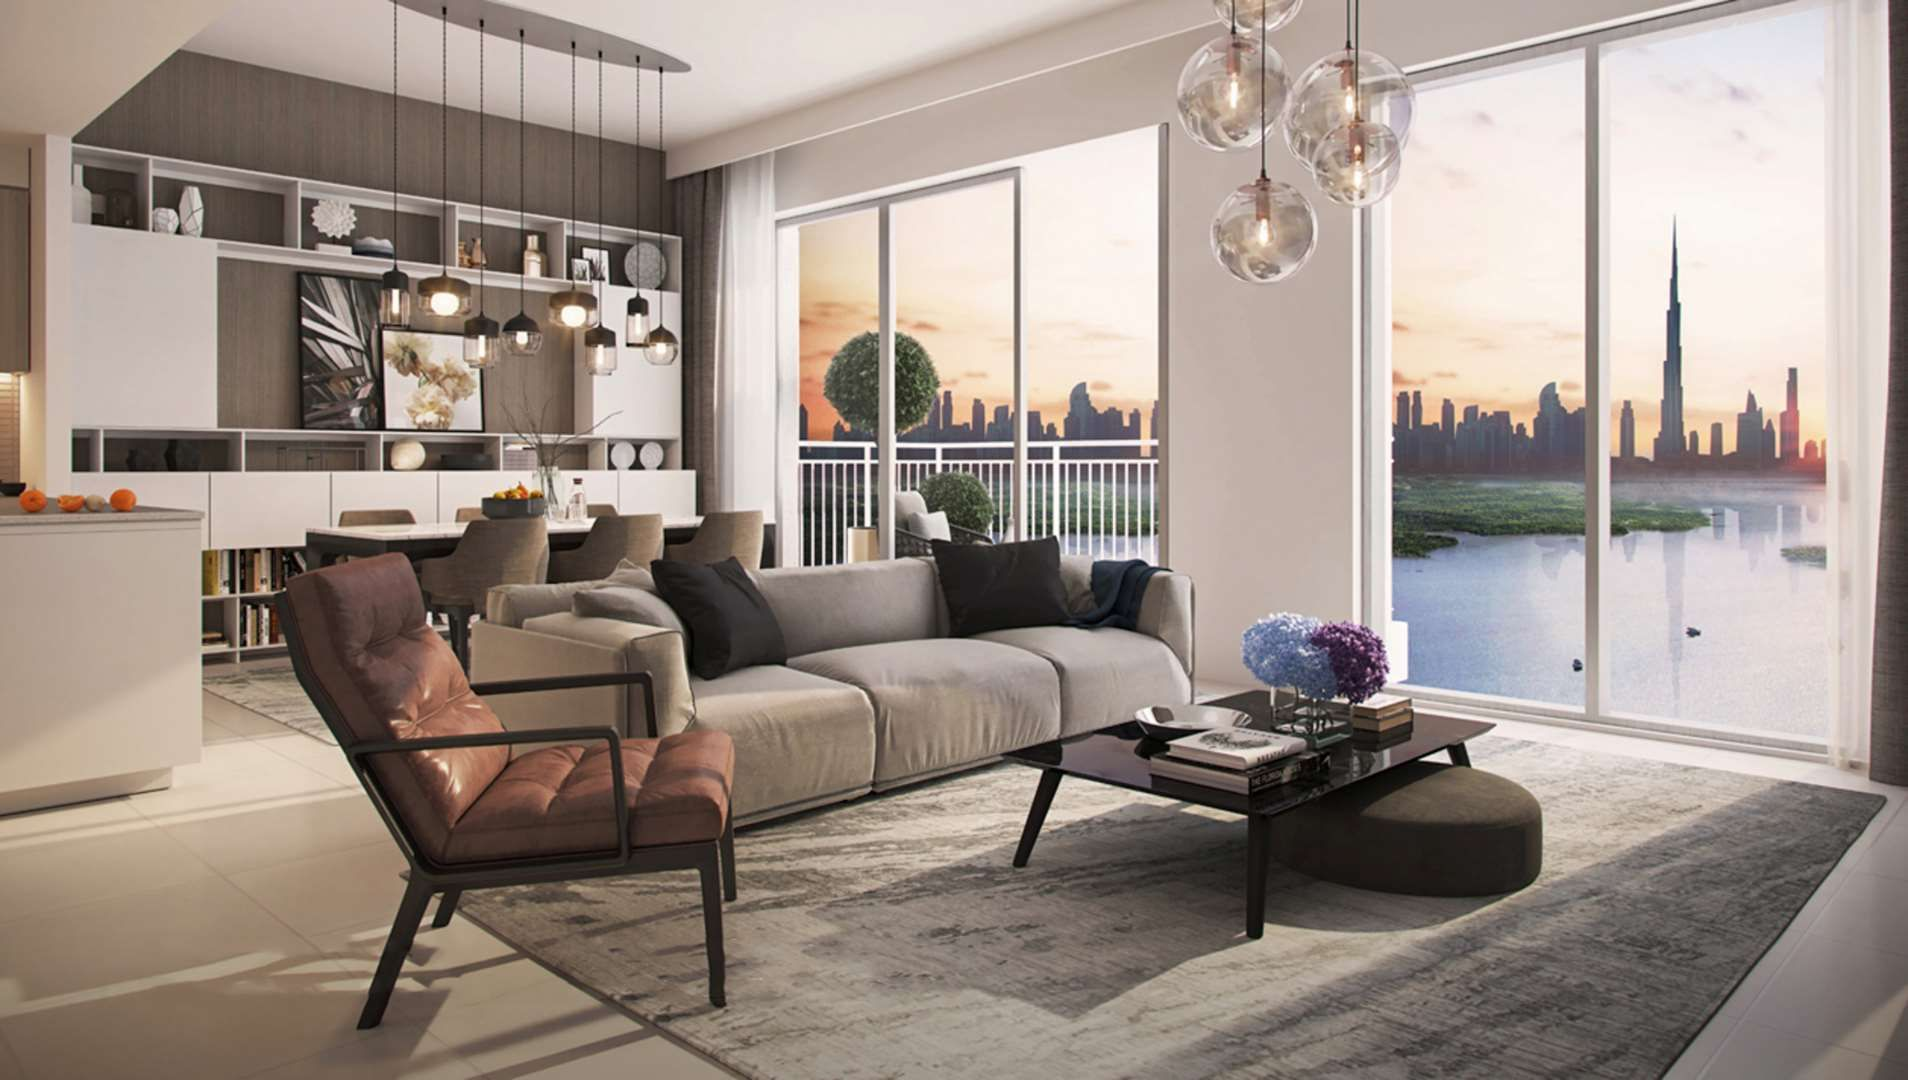 Luxury Property is delighted to present 17 Icon Bay, a